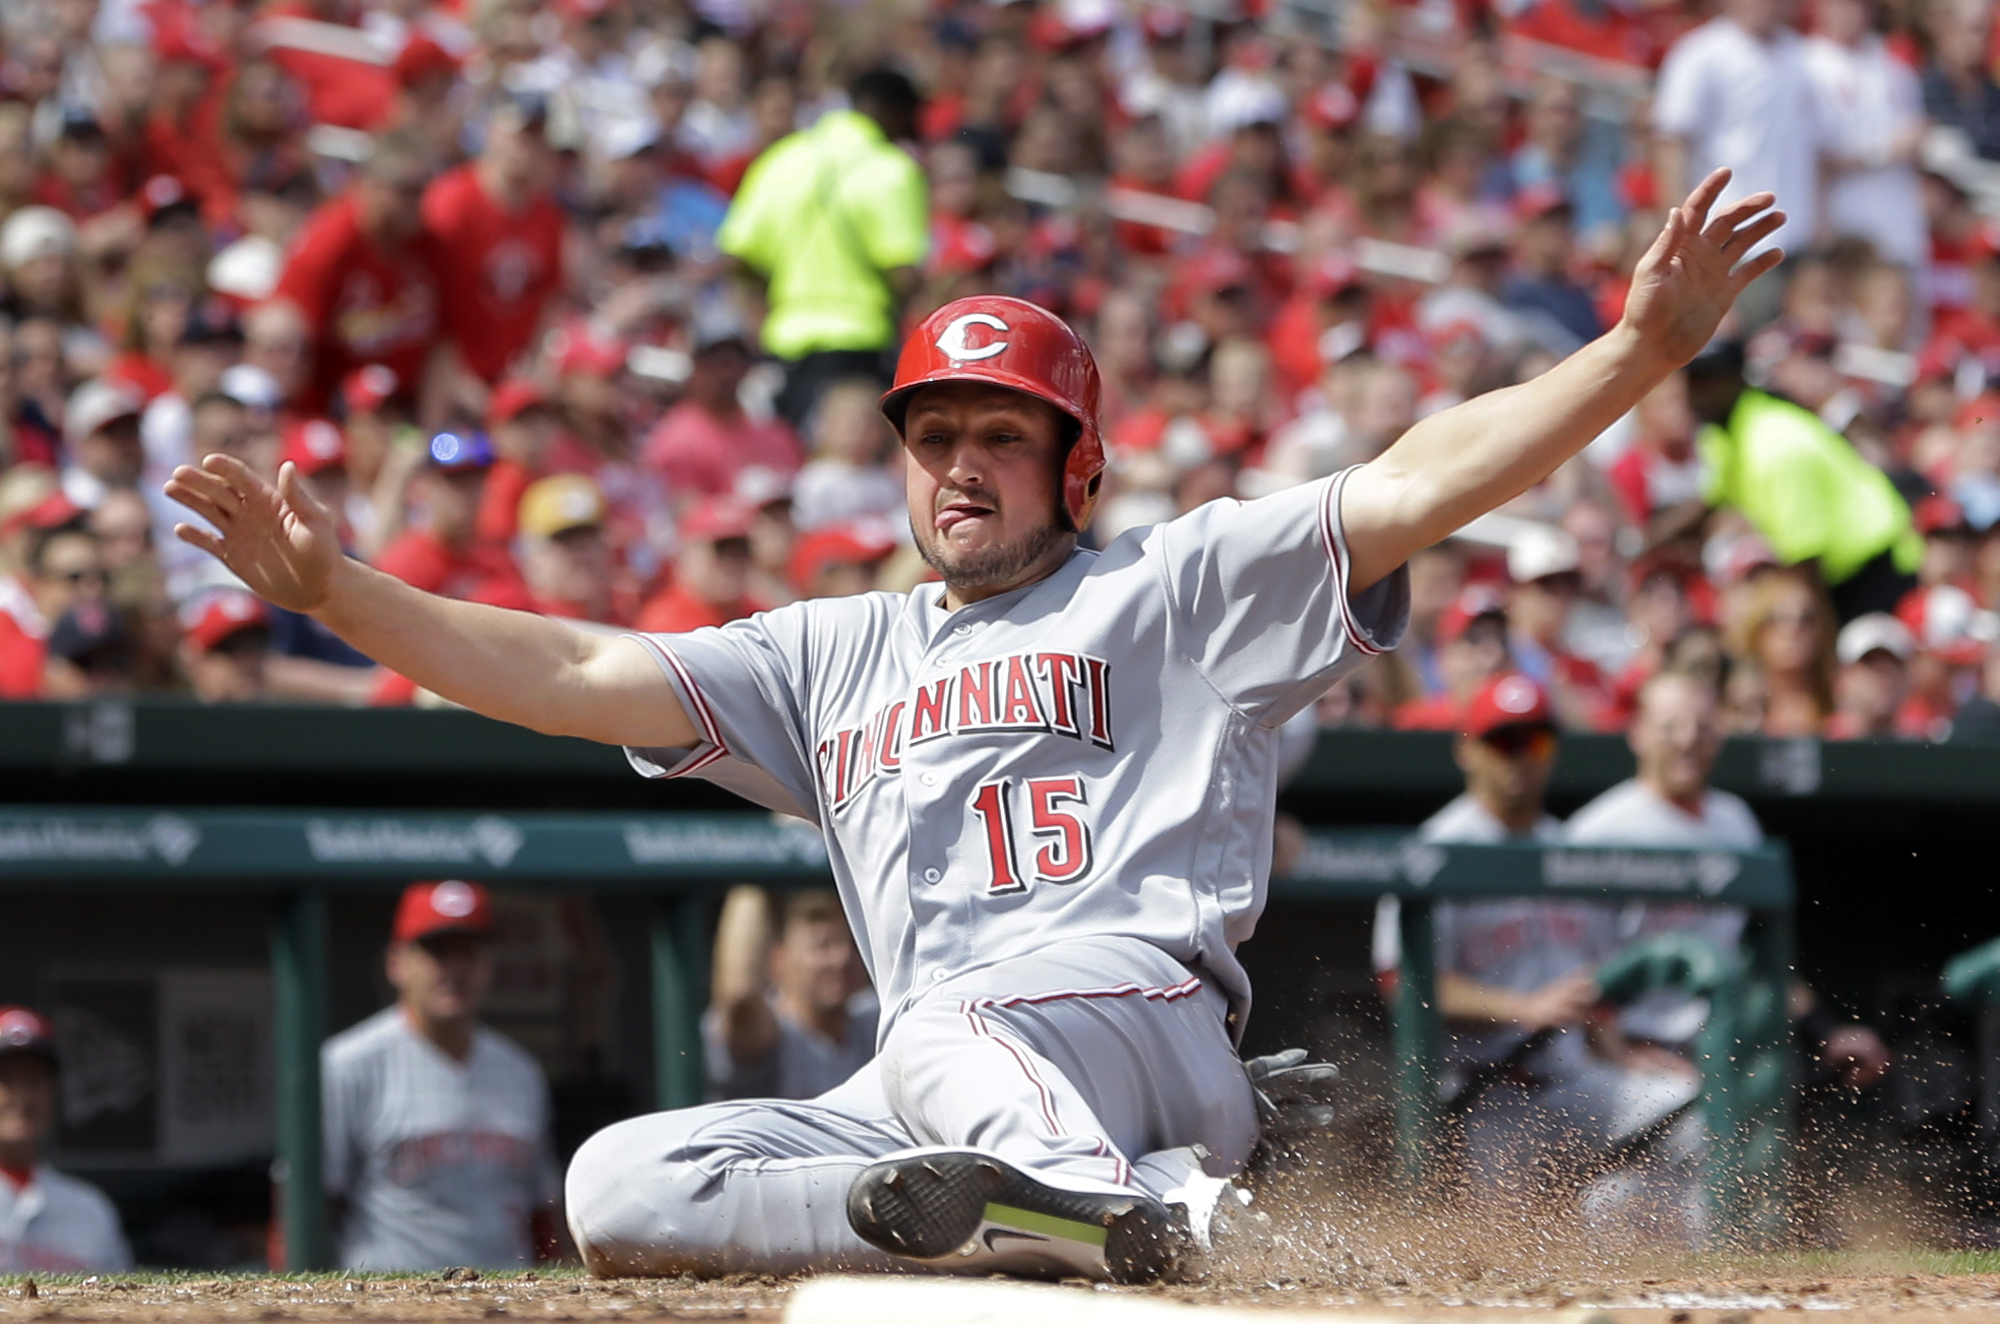 Cincinnati Reds' Jordan Pacheco scores on a double by Eugenio Suarez during the sixth inning of a baseball game against the St. Louis Cardinals Saturday, April 16, 2016, in St. Louis. (AP Photo/Jeff Roberson)